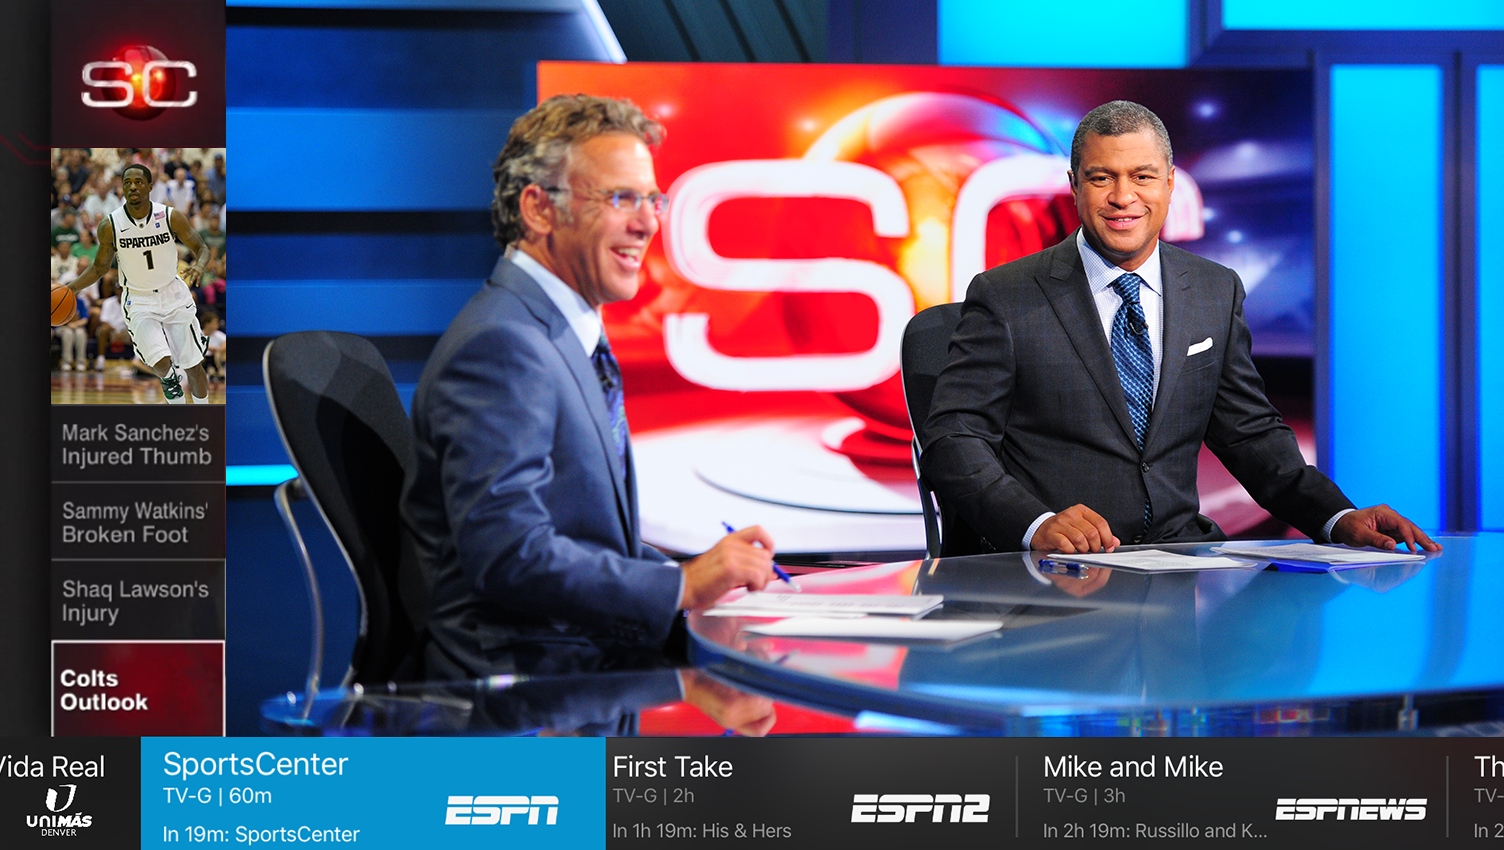 A live TV package — ESPN, CNN, AMC and more — is finally coming to Apple TV